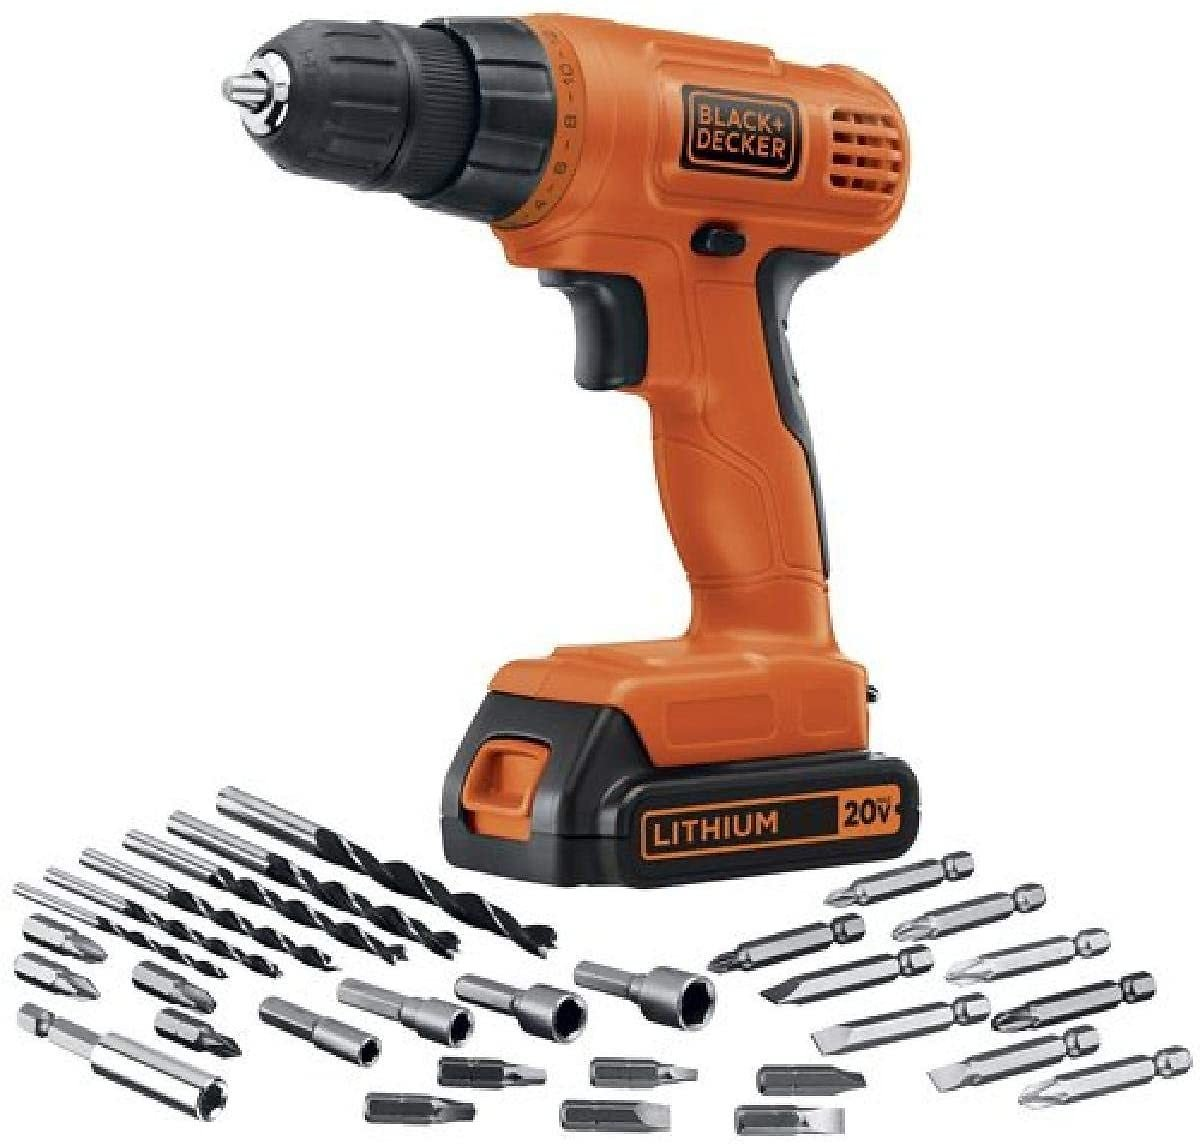 43% Discount - BLACK + DECKER 20V MAX Cordless Drill / Driver with 30-Piece Accessories